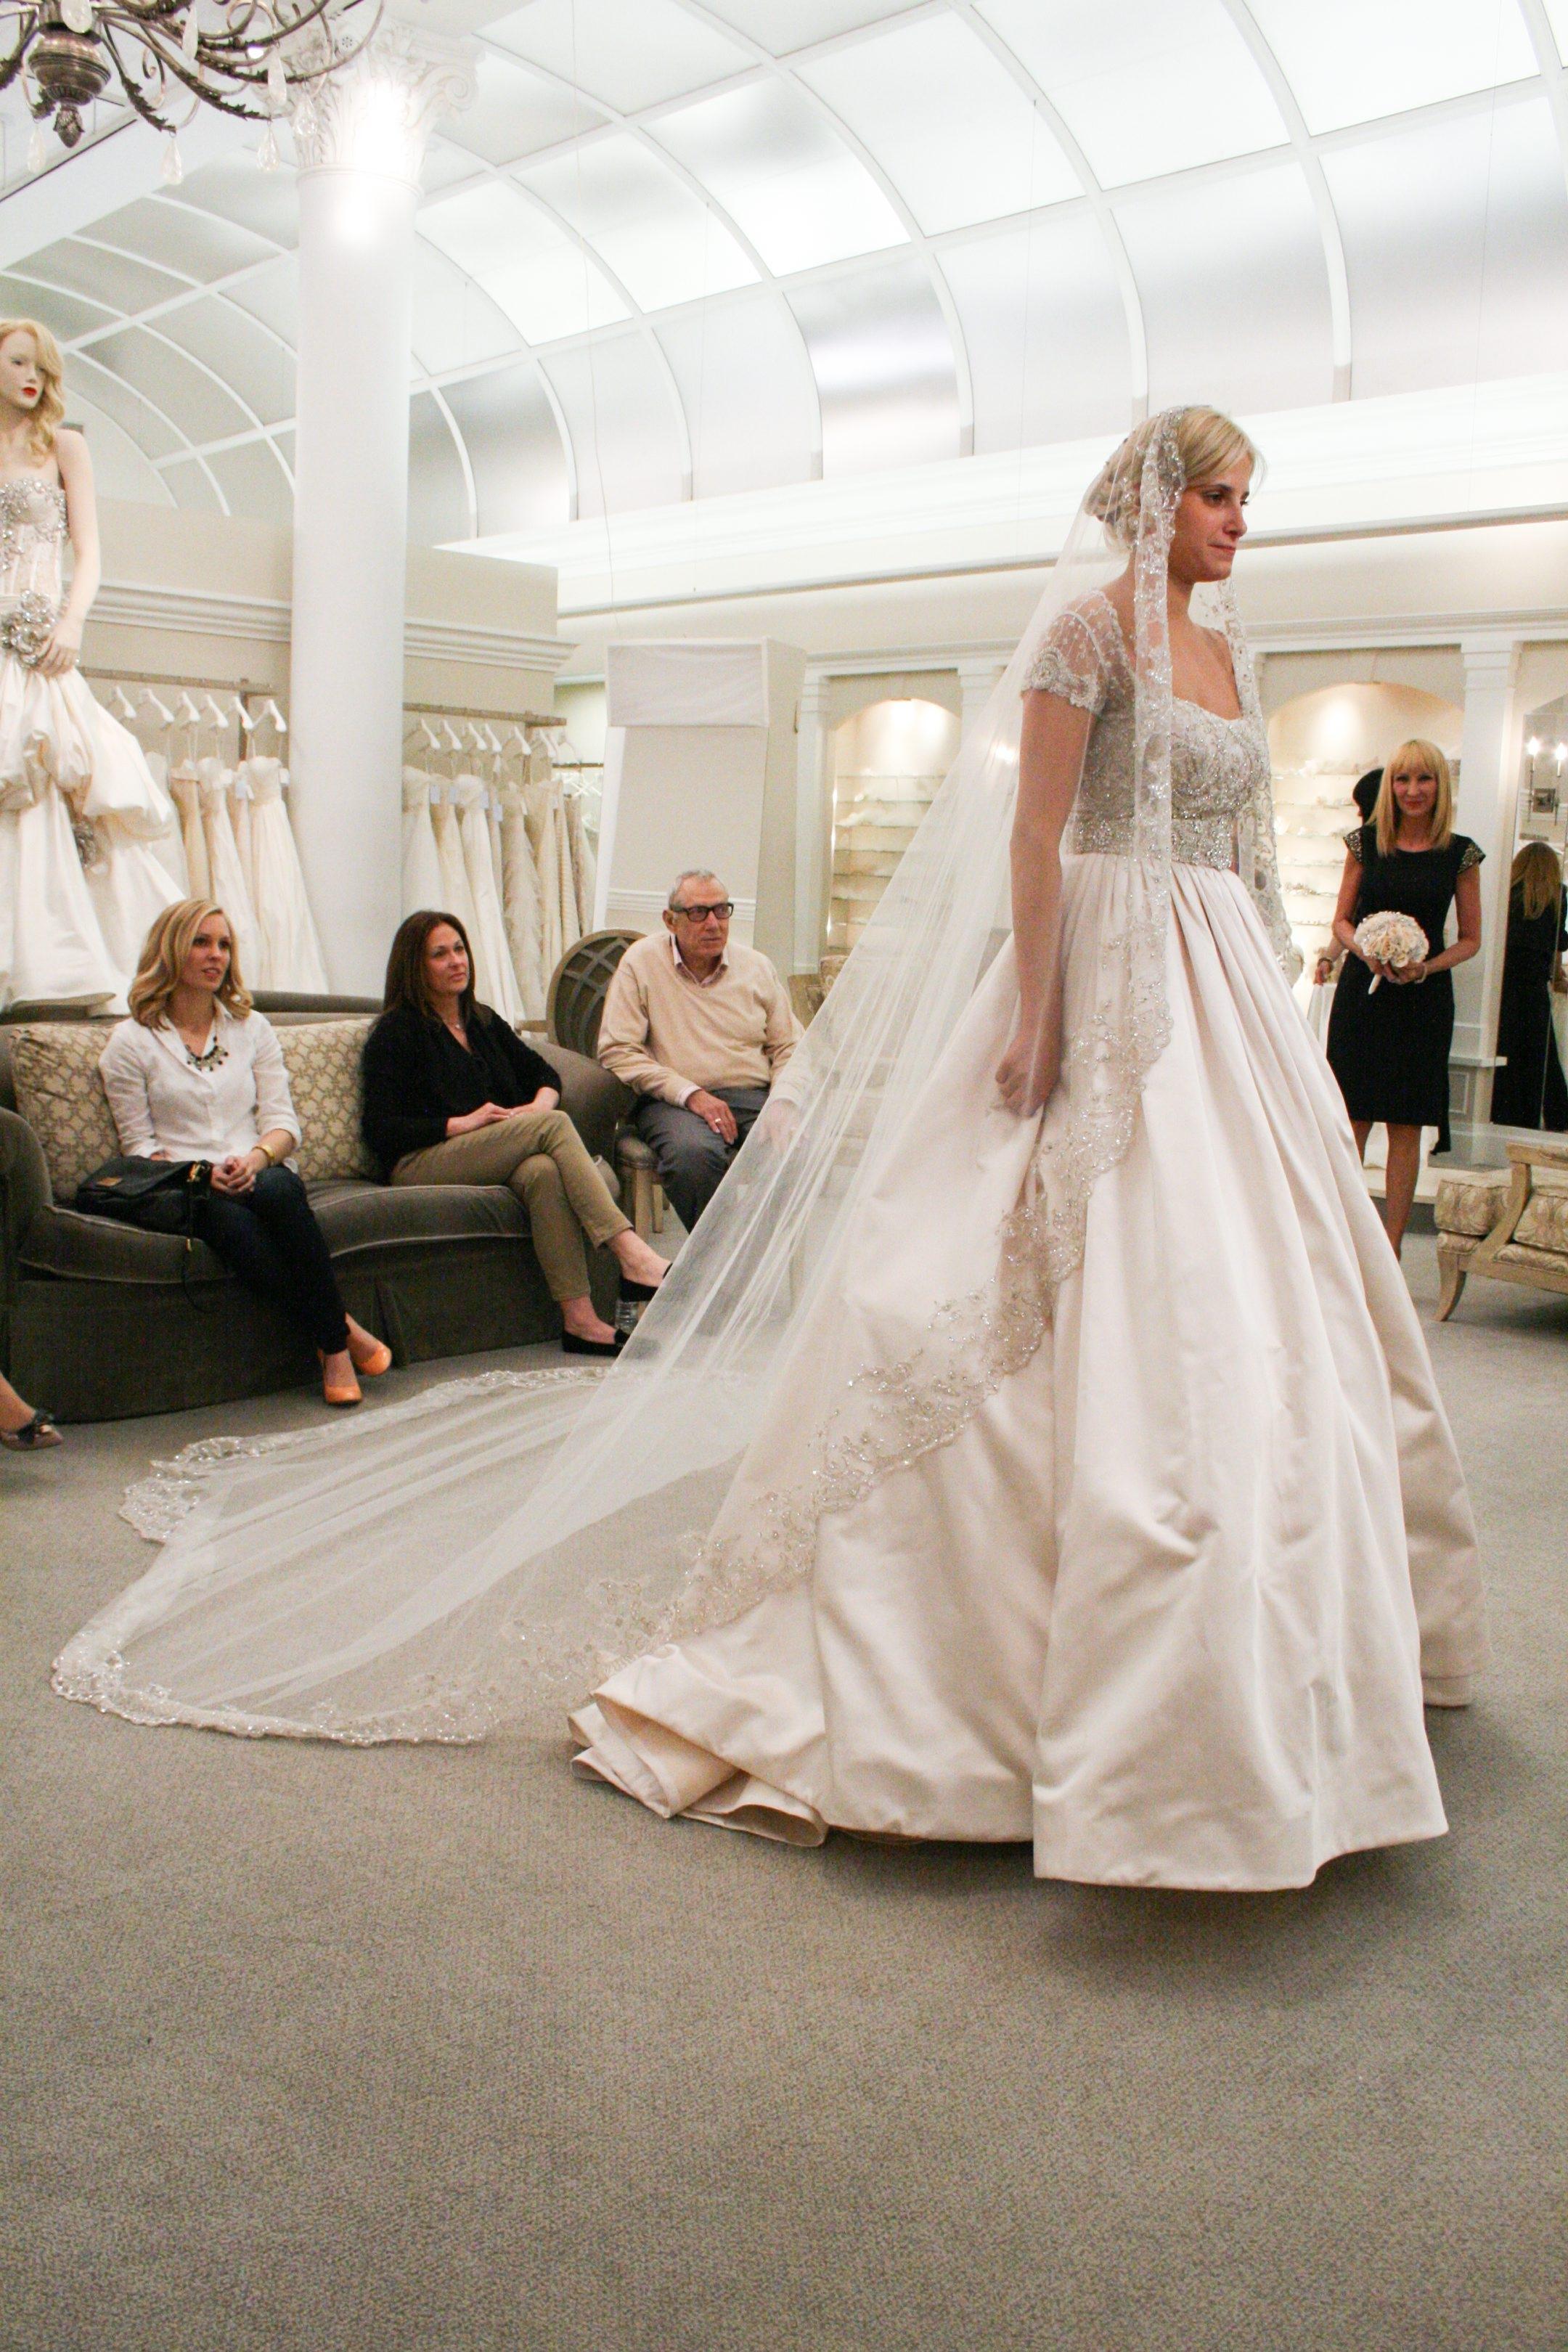 """Zabrina Reich during her dress selection on """"Say Yes to the Dress."""""""